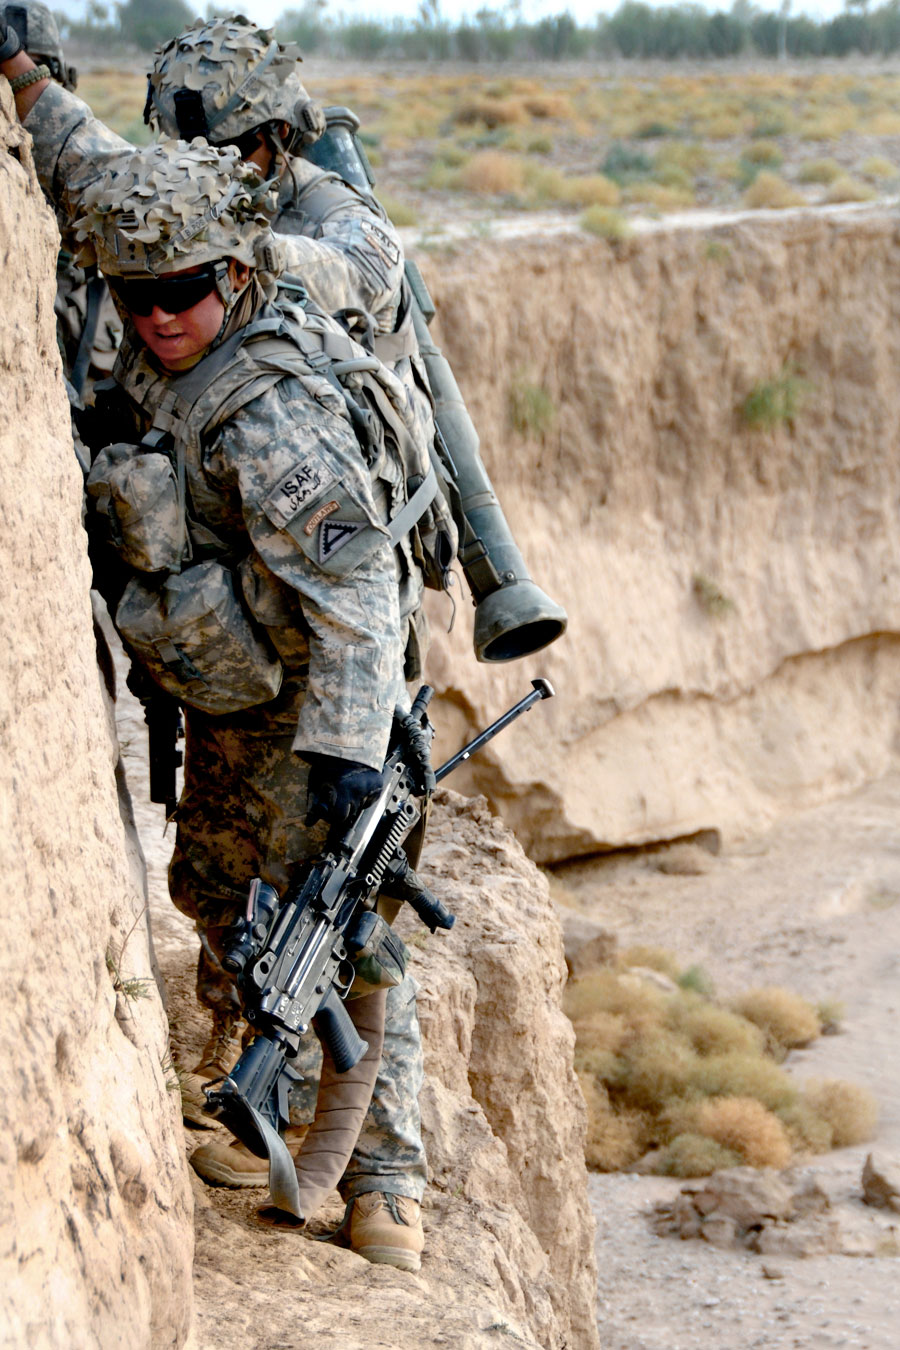 Soldier clings to wall with anti-tank weapon